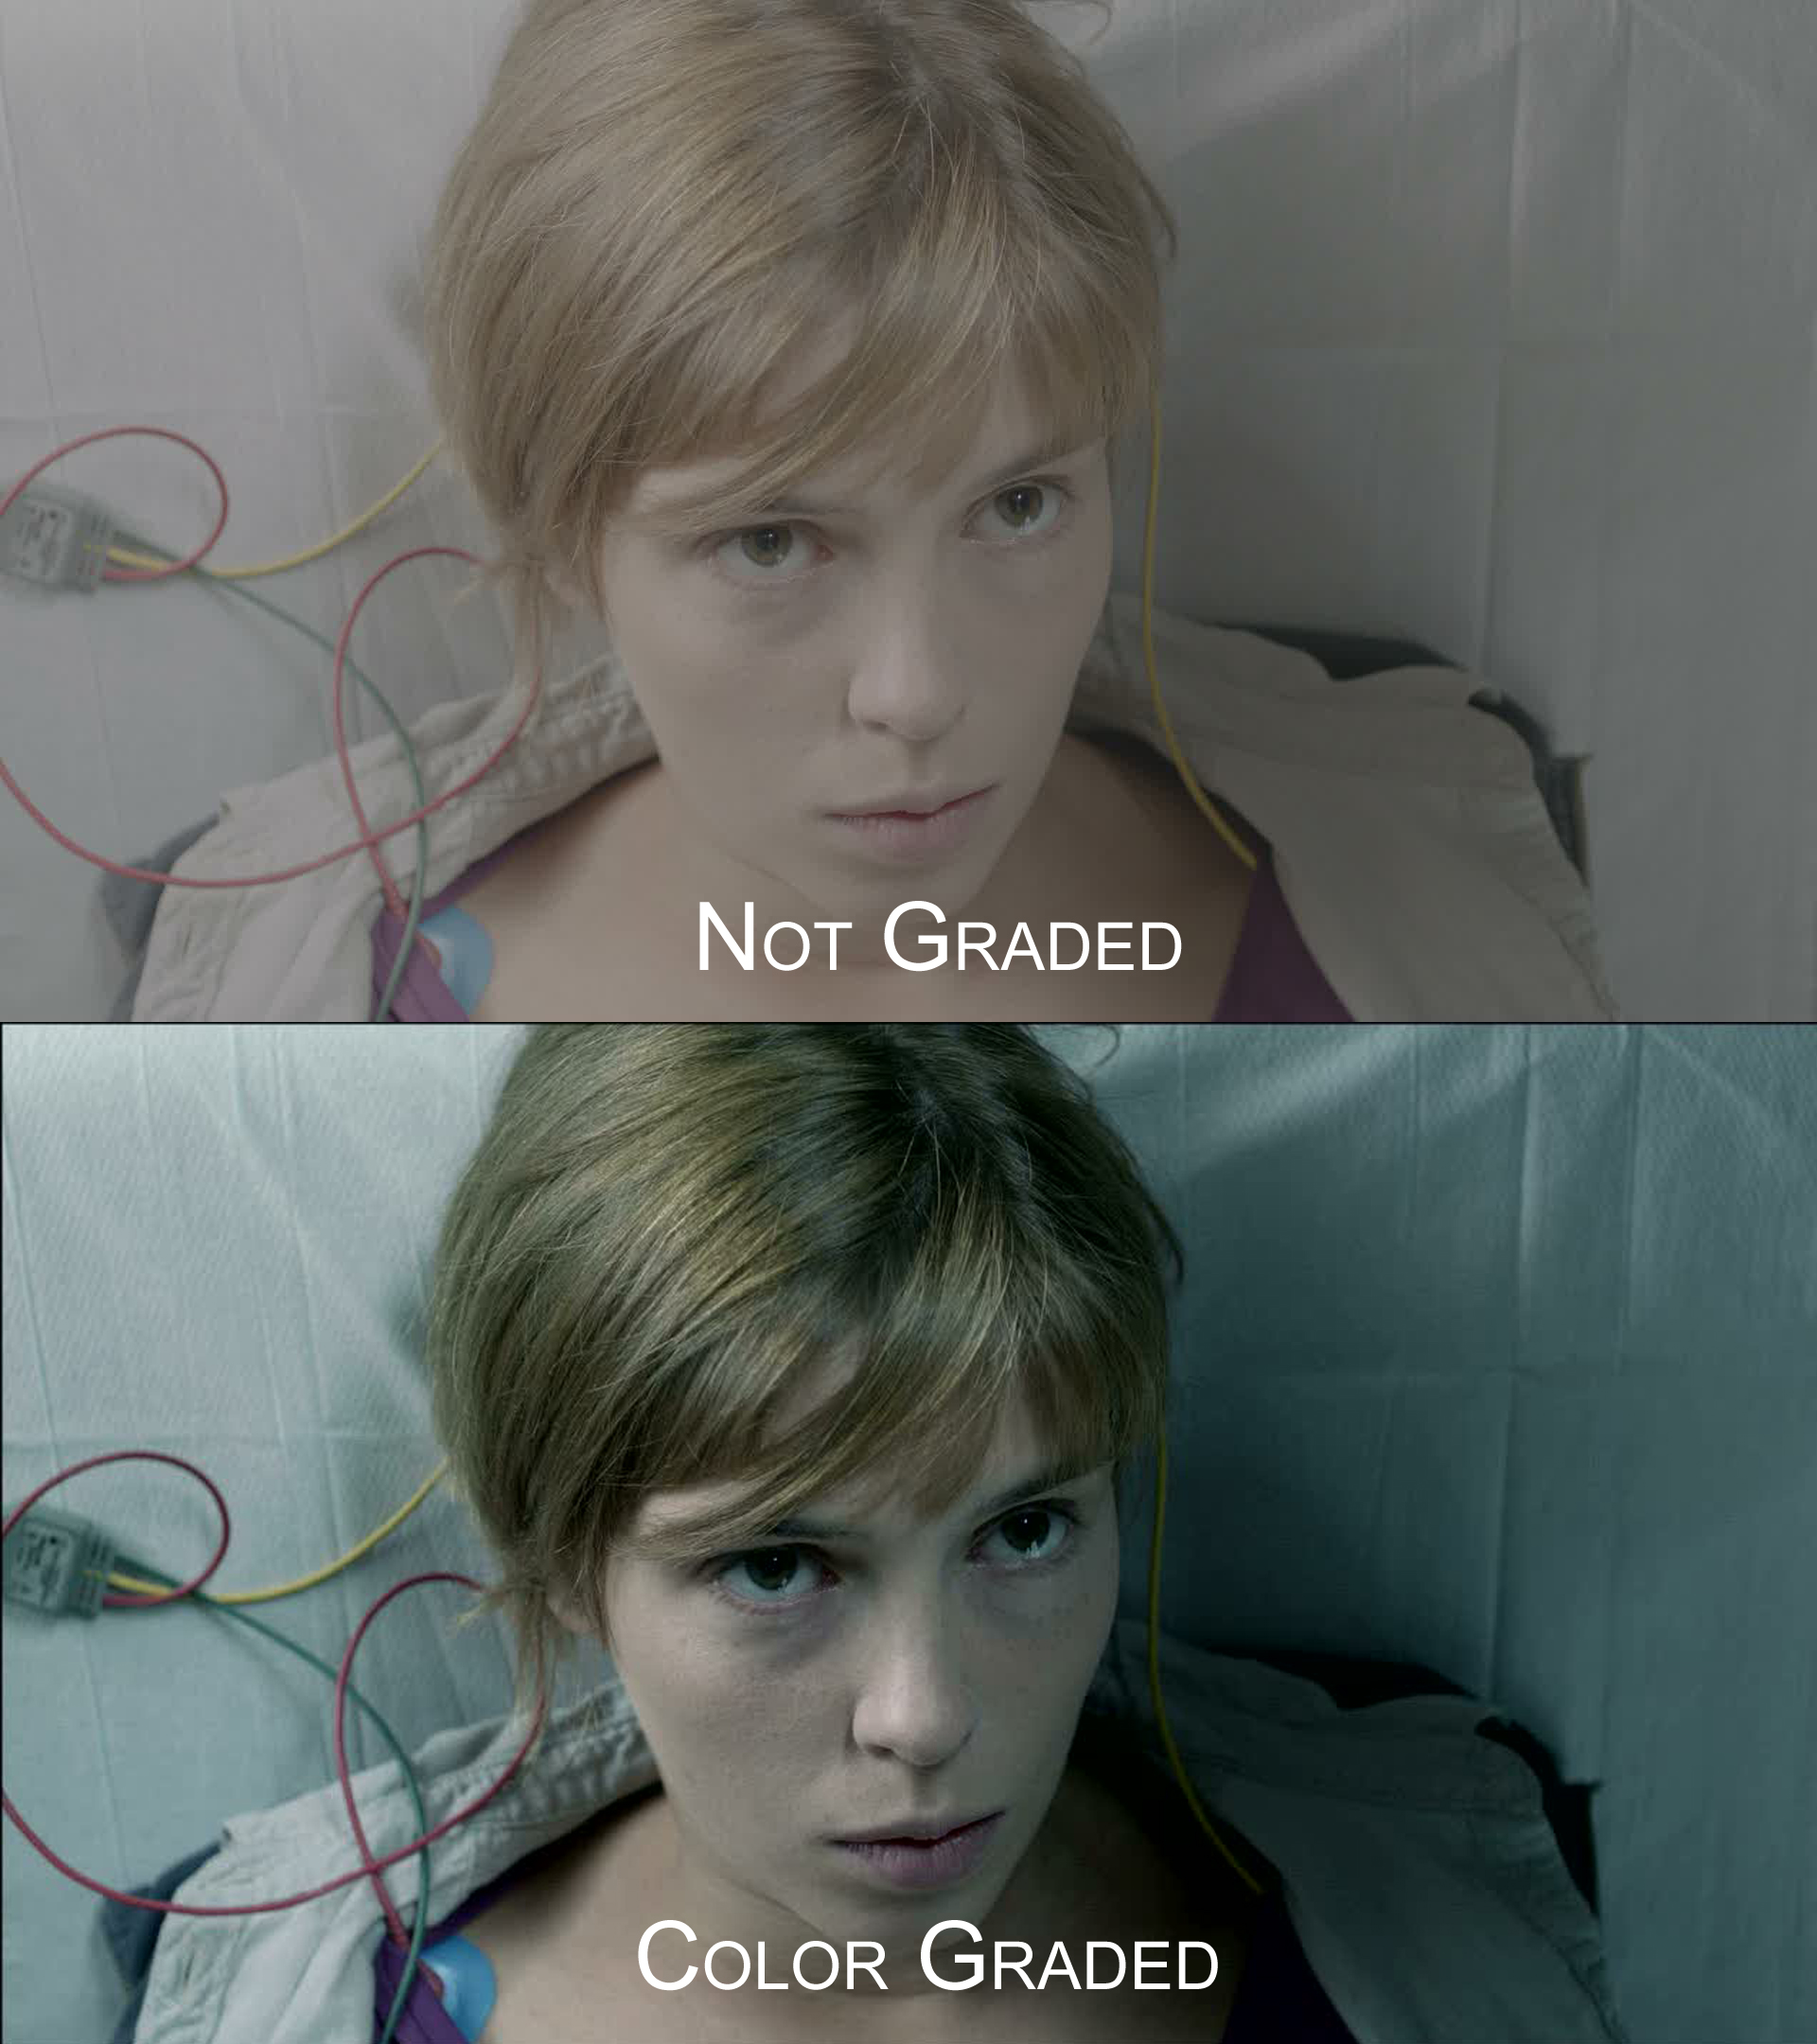 An example of Color Grading